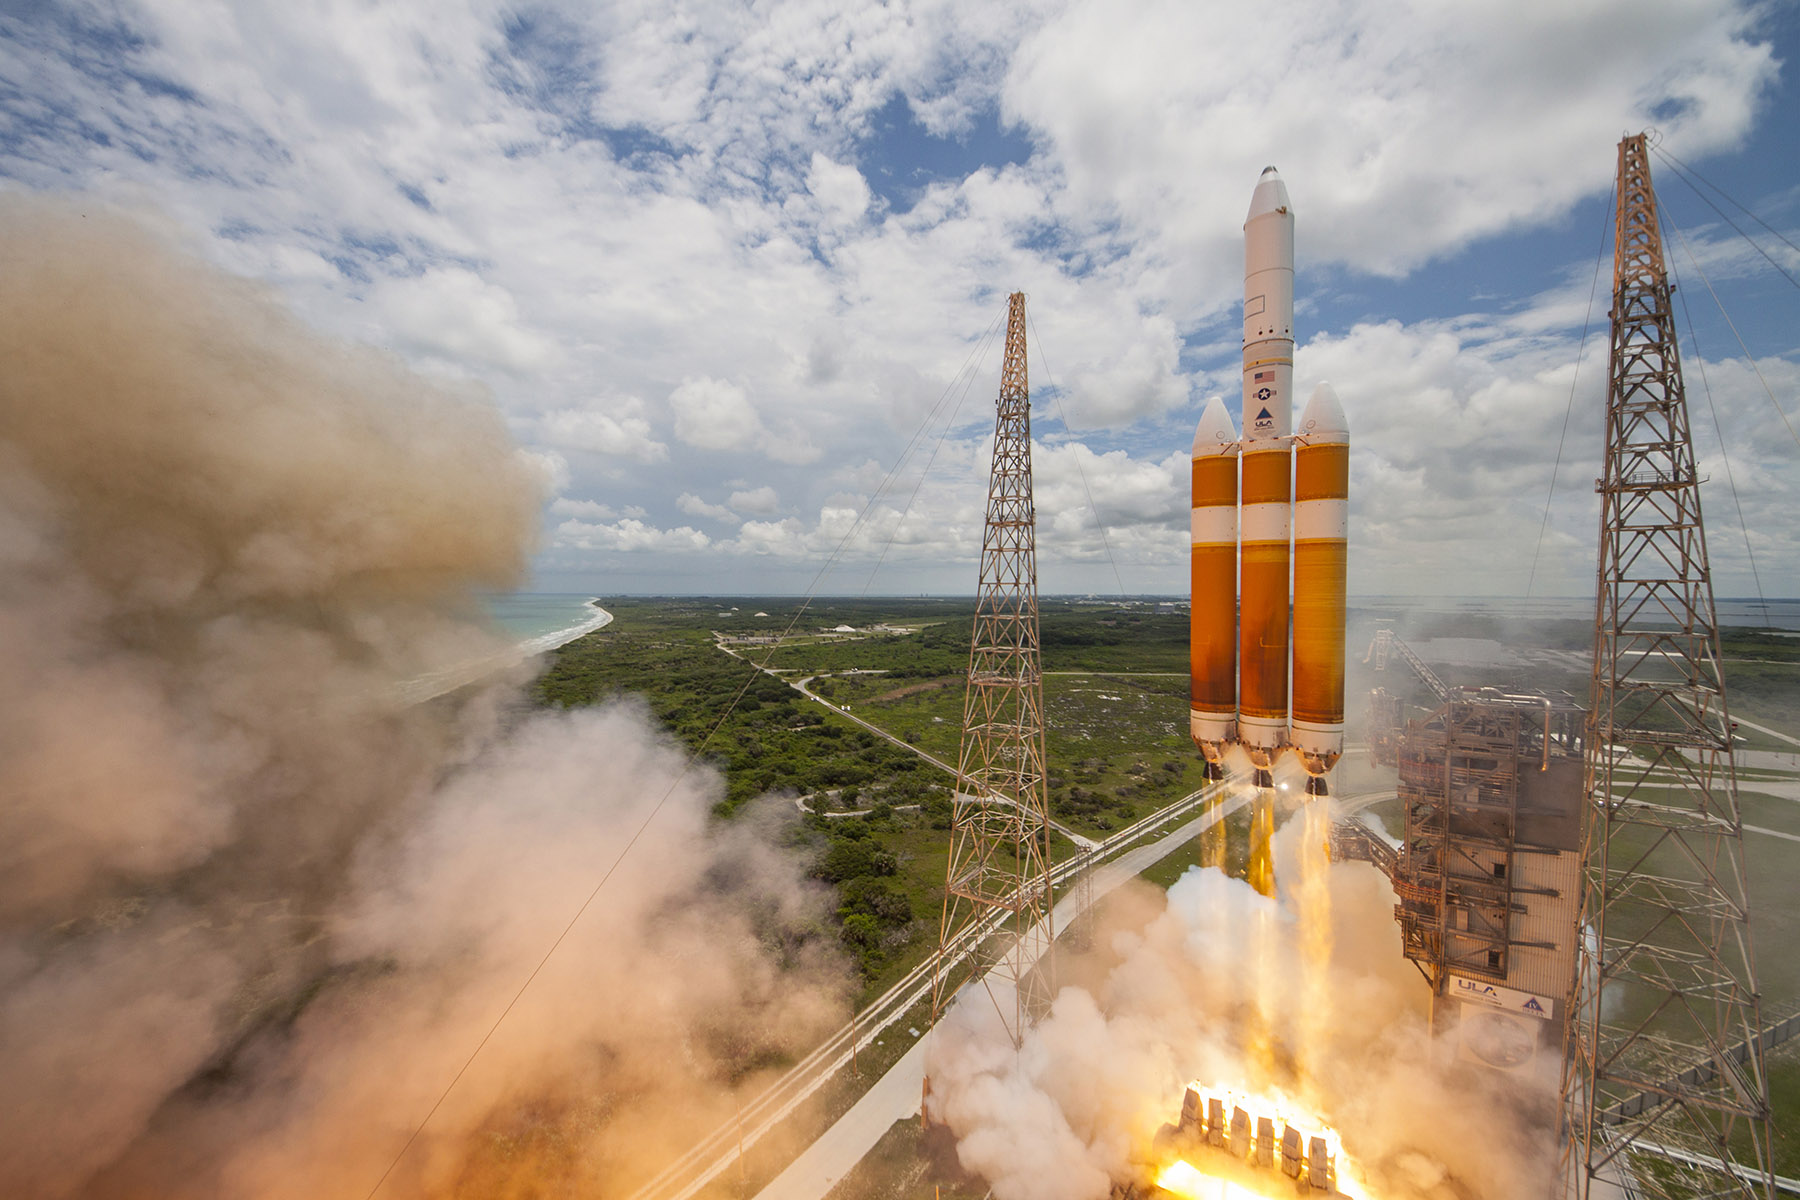 Delta IV Heavy Rocket Launches NROL-37 Spy Satellite